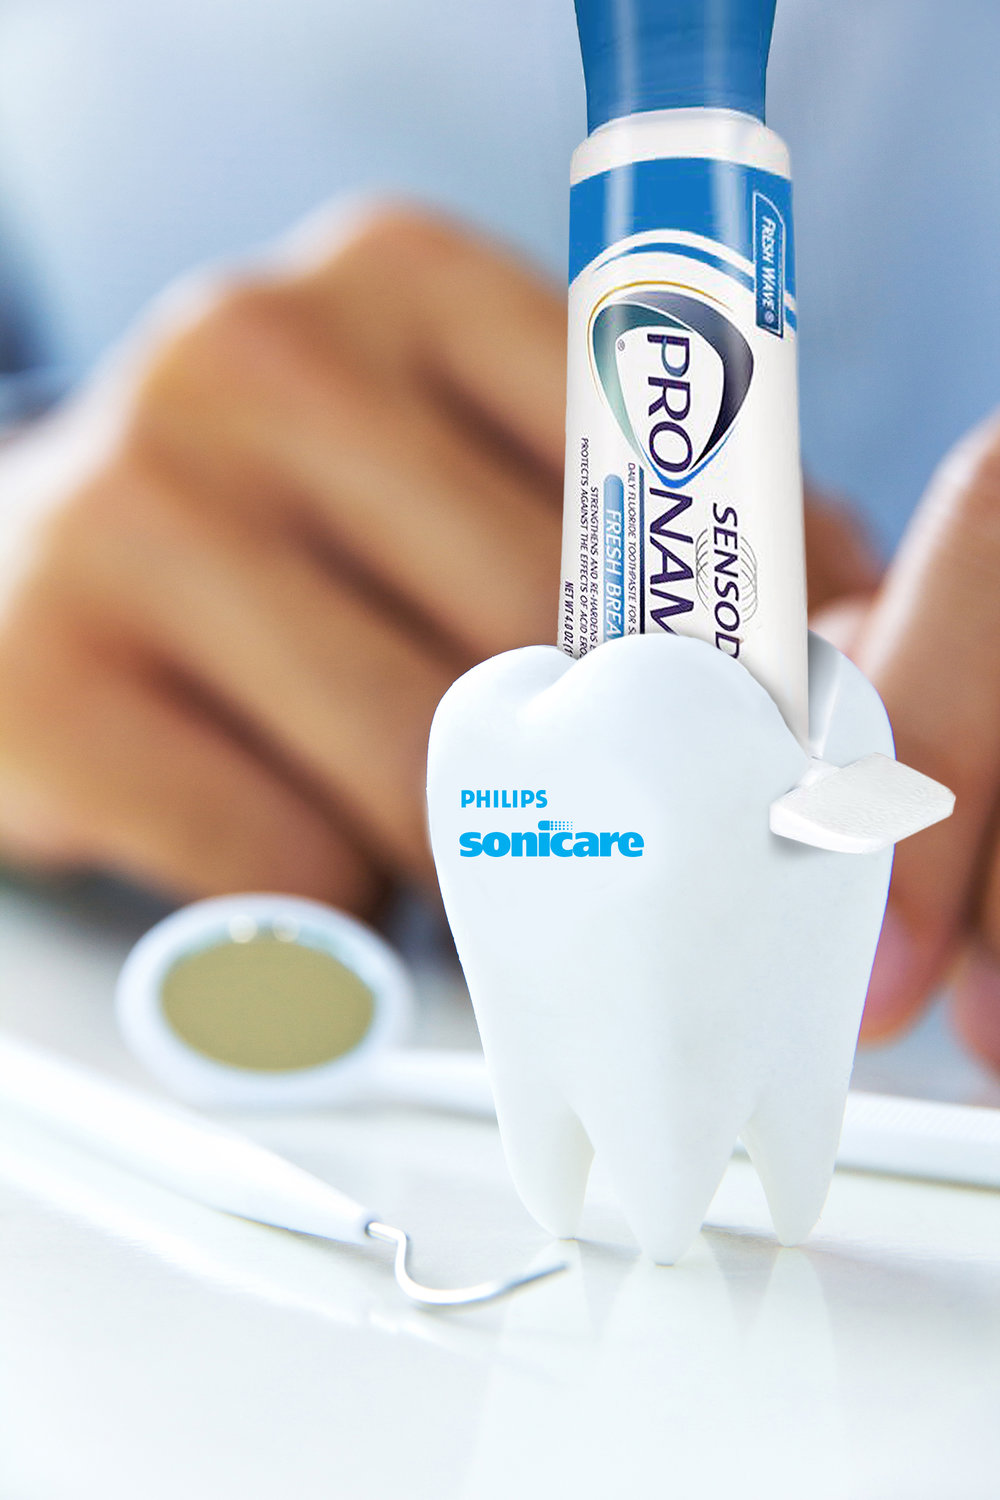 Partnership with Sensodyne ProNamel Toothpaste and toothpaste squeezer - ProNamel toothpaste is gentle and effective at the same time, making it a great option for a Sonicare partnership and dental obsessed people.